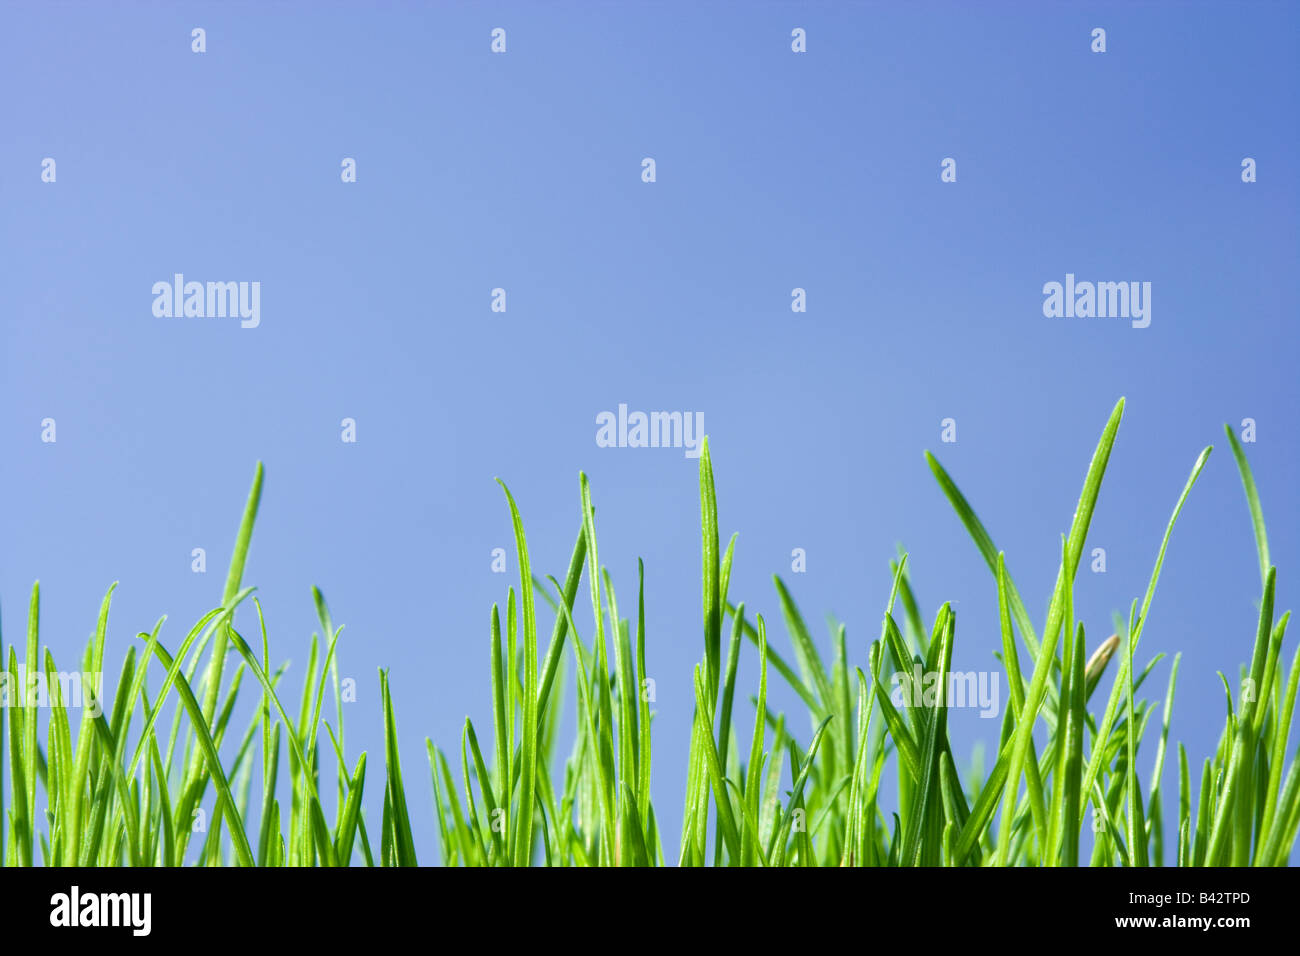 Grass, low angle against blue sky. - Stock Image